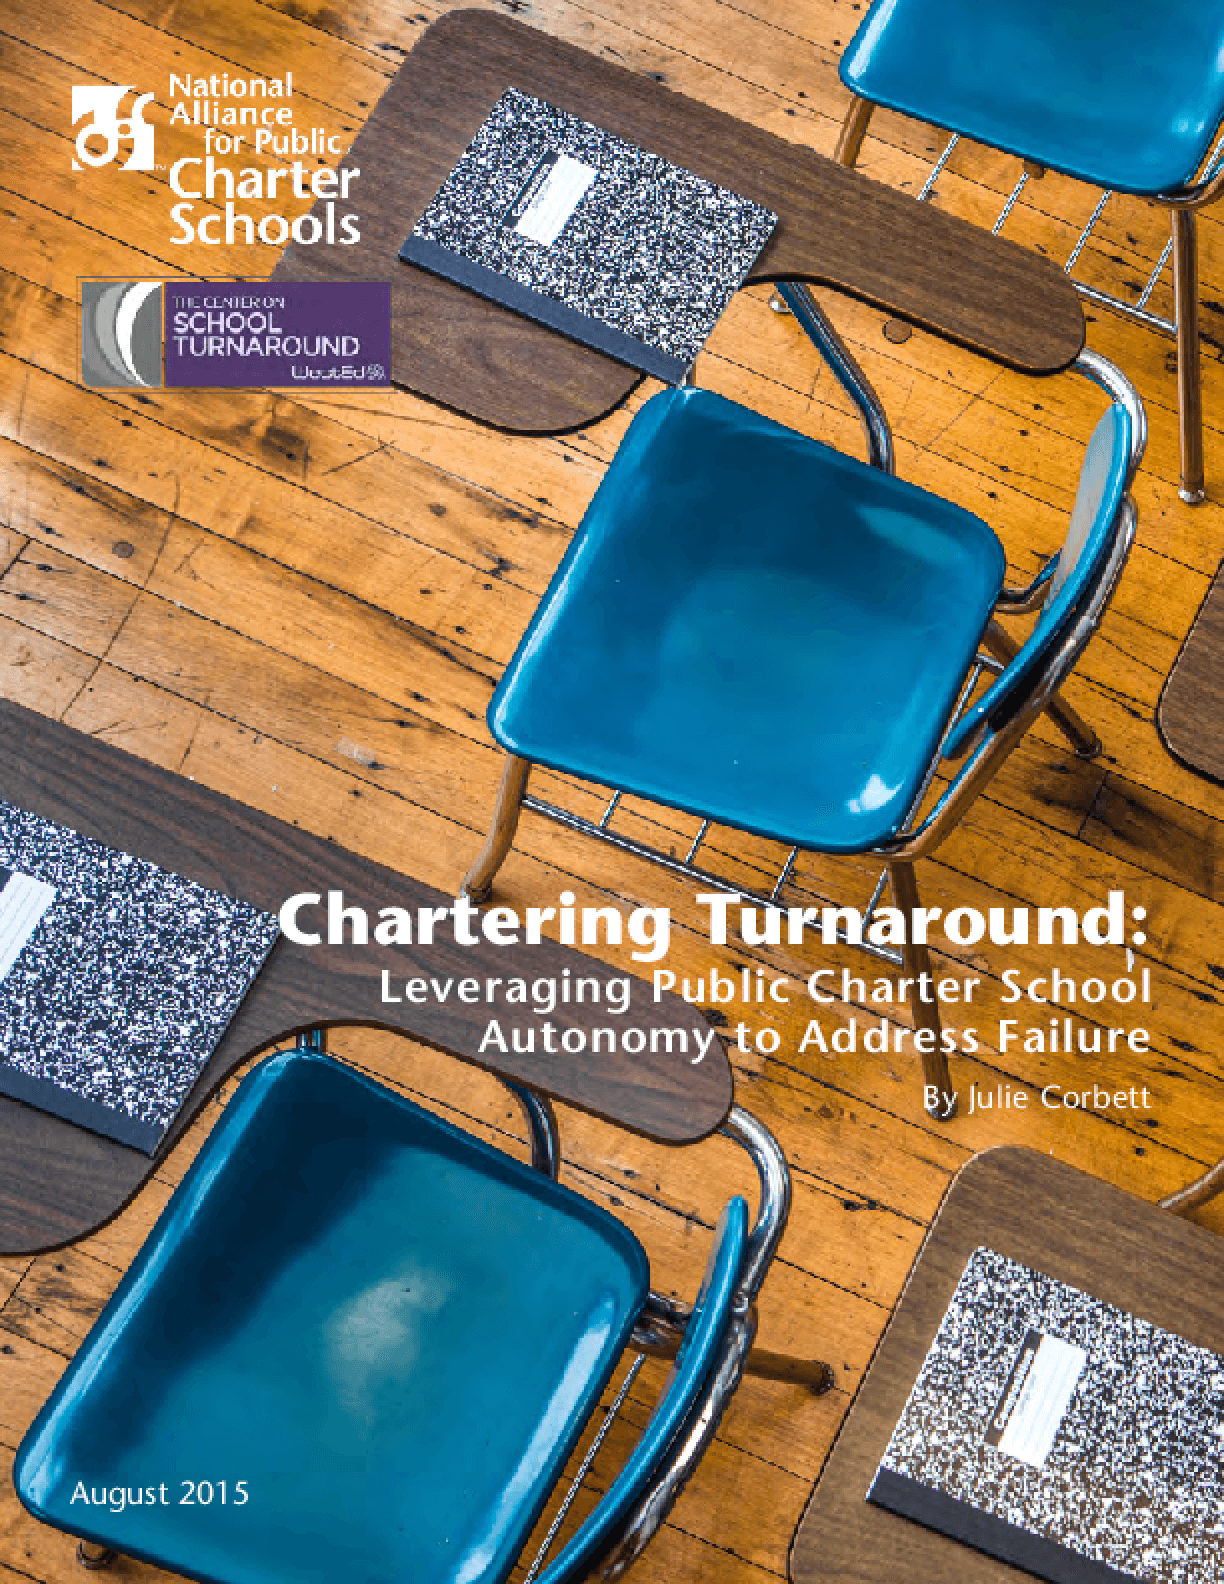 Chartering Turnaround: Leveraging Public Charter School Autonomy to Address Failure